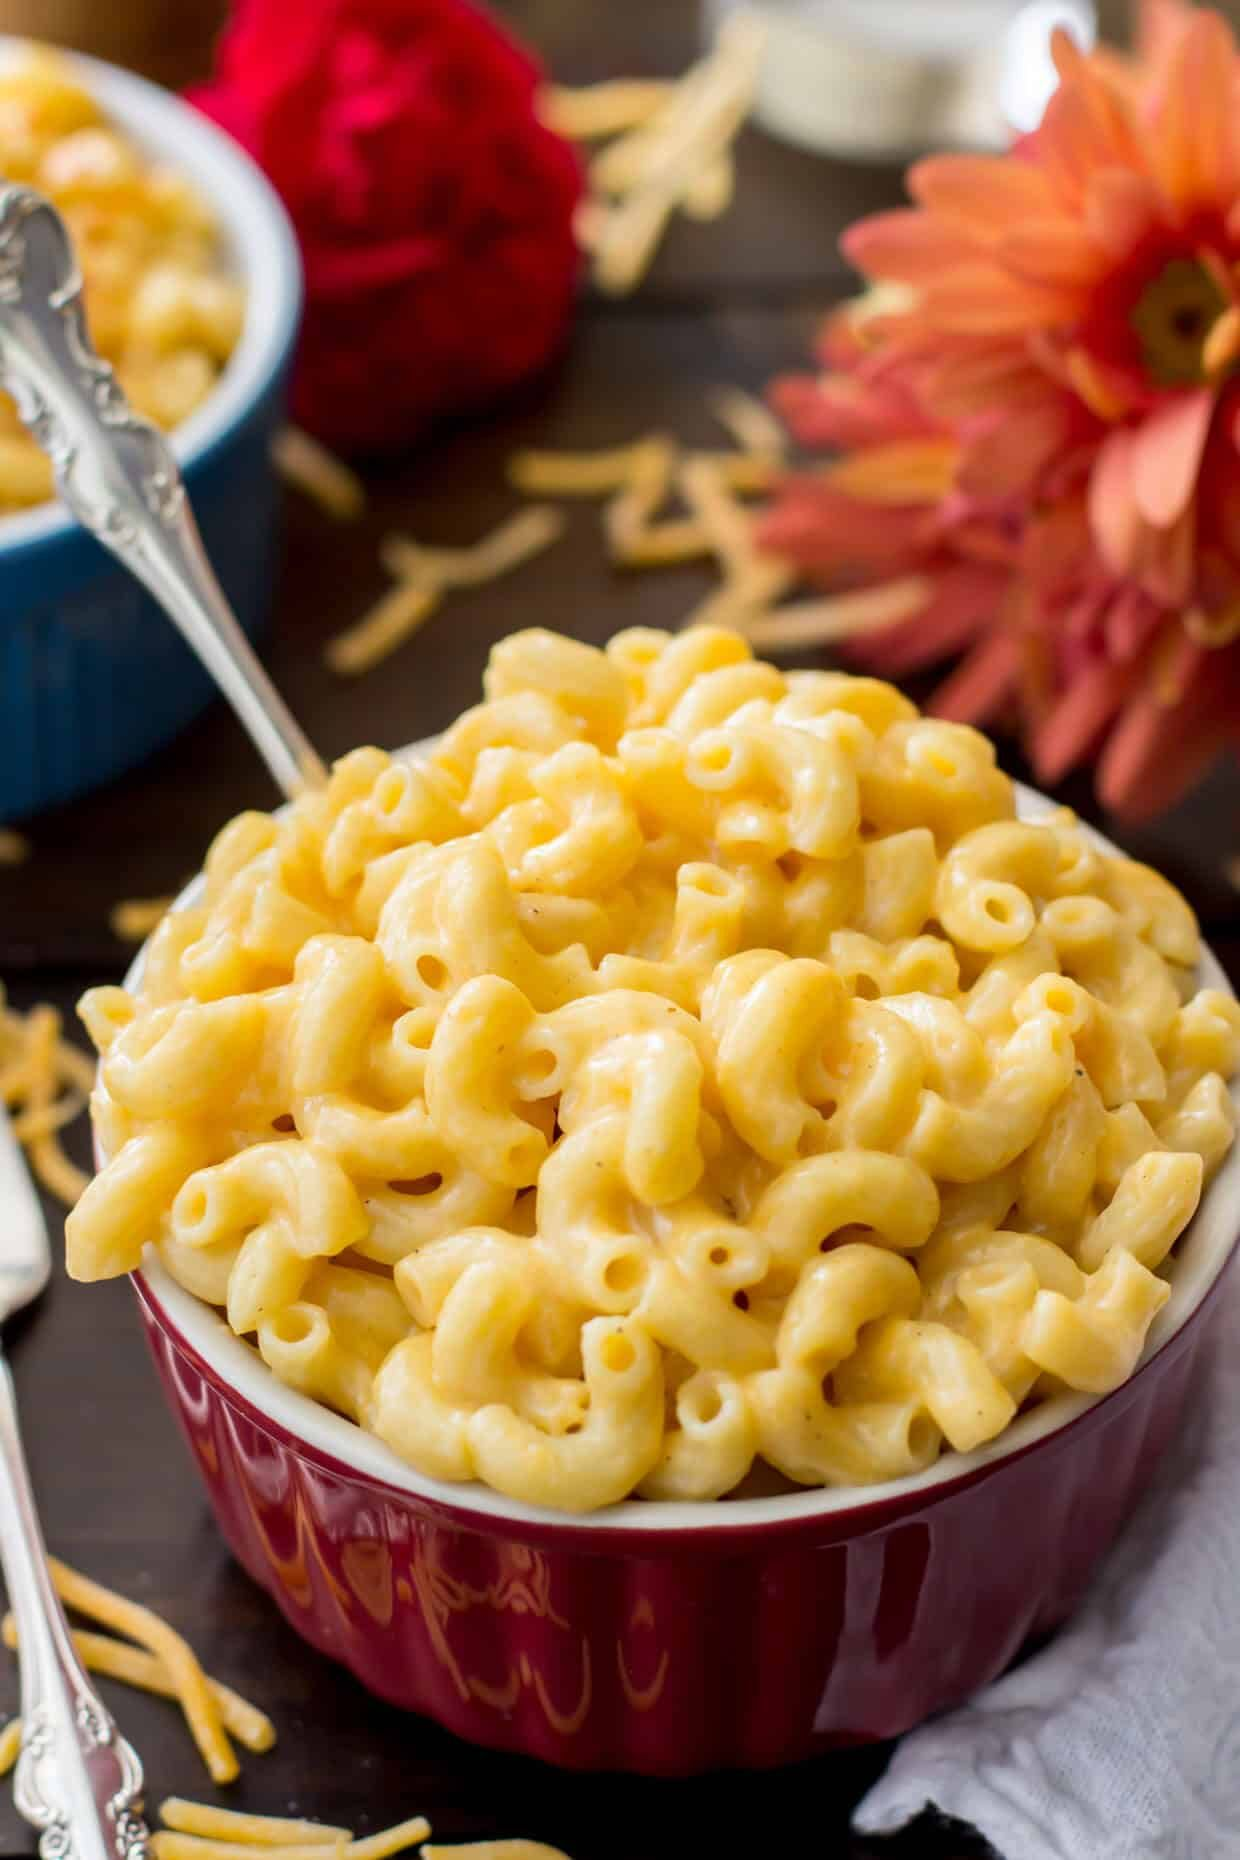 Homemade creamy mac and cheese no flour and no roux